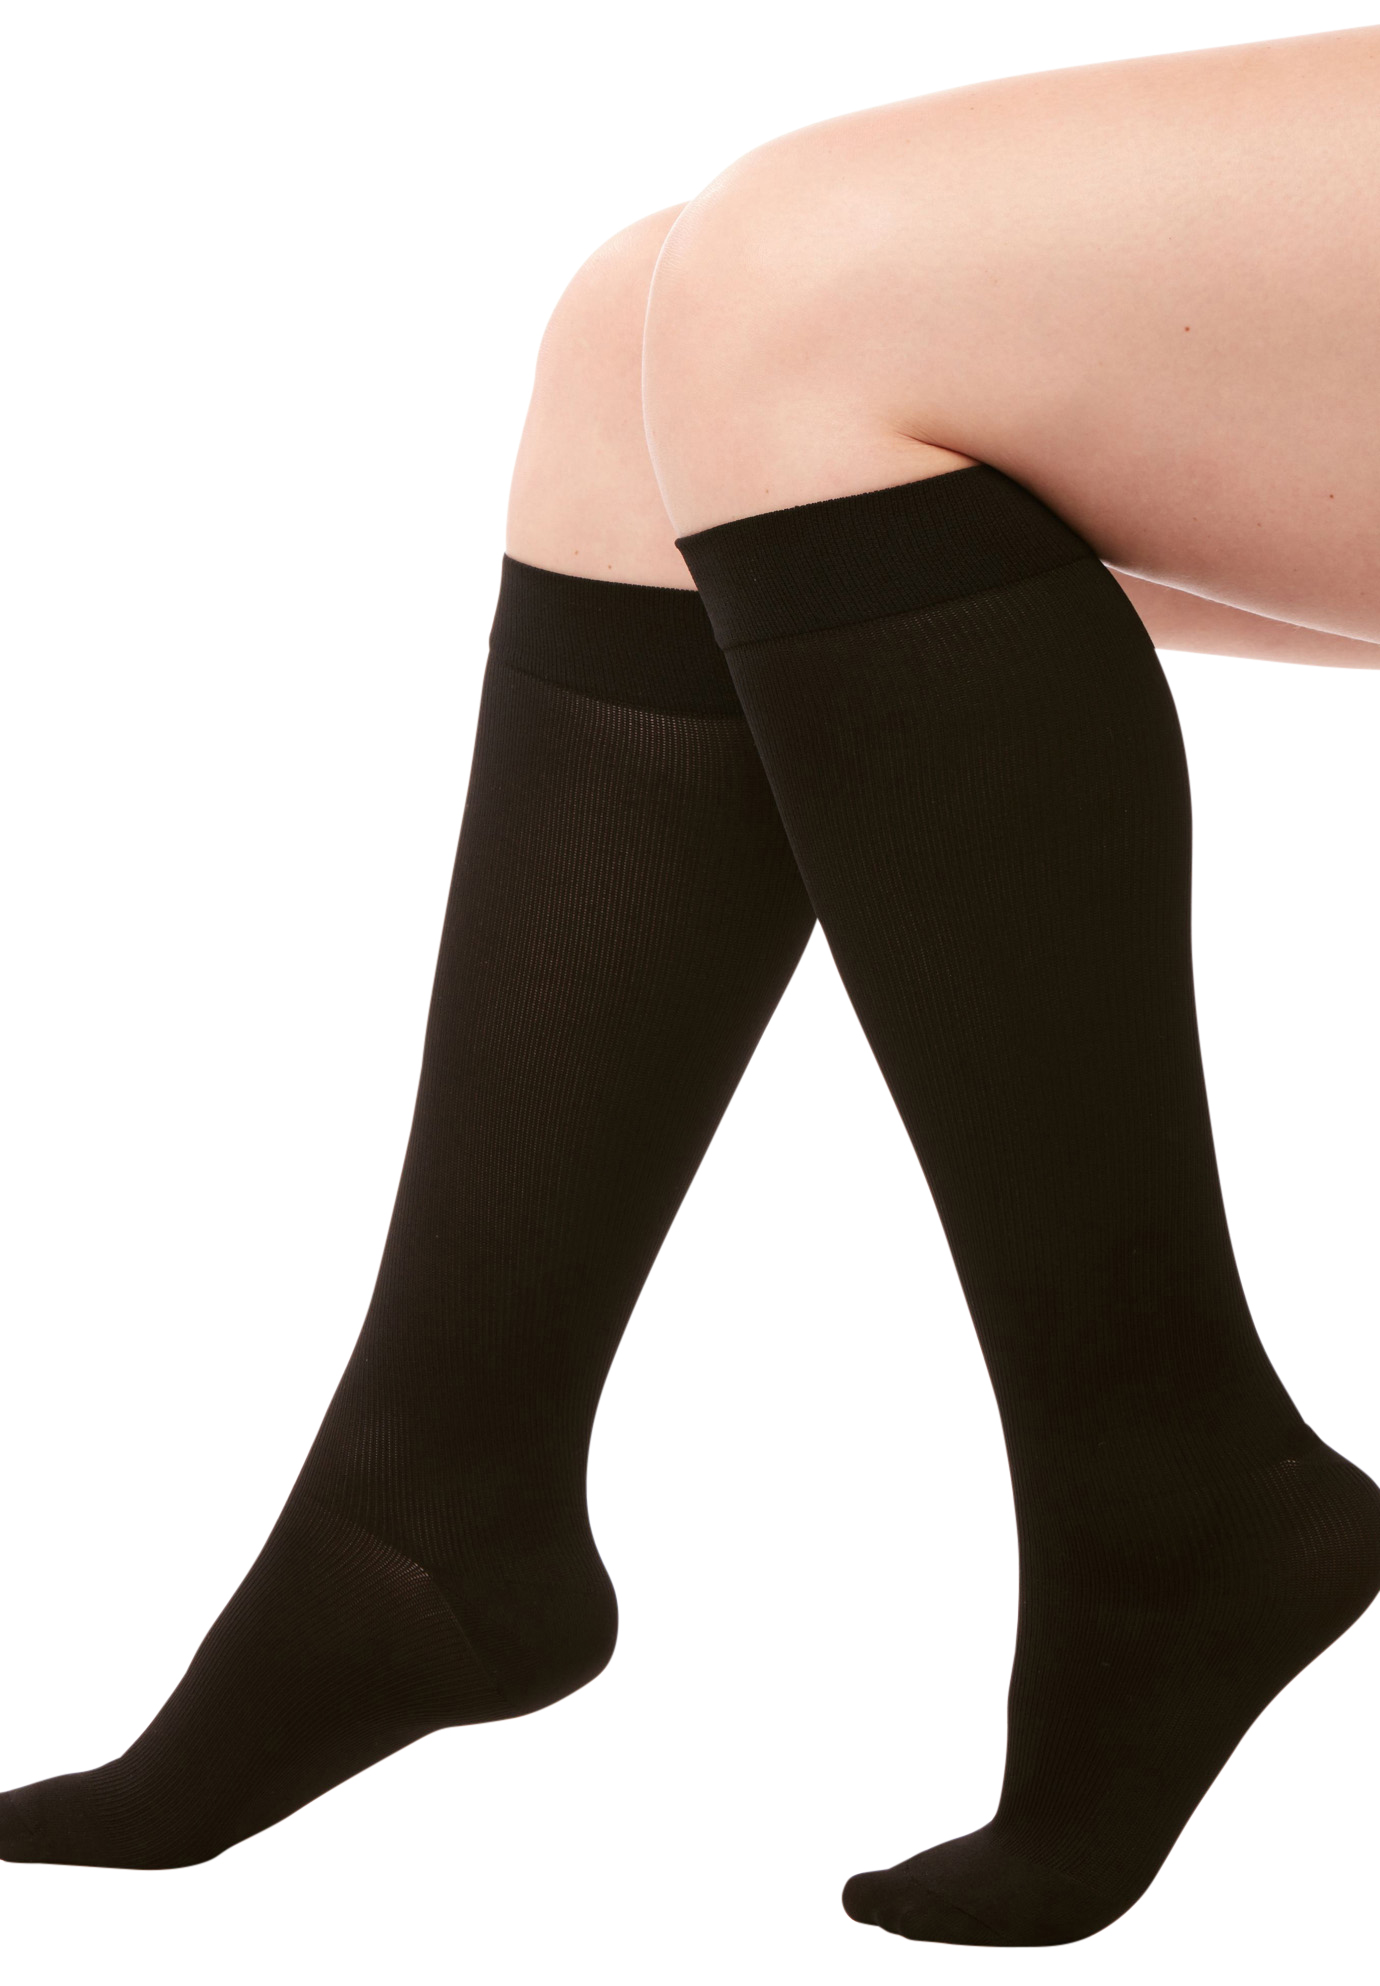 Medium Control Graduated Compression Trouser Socks,